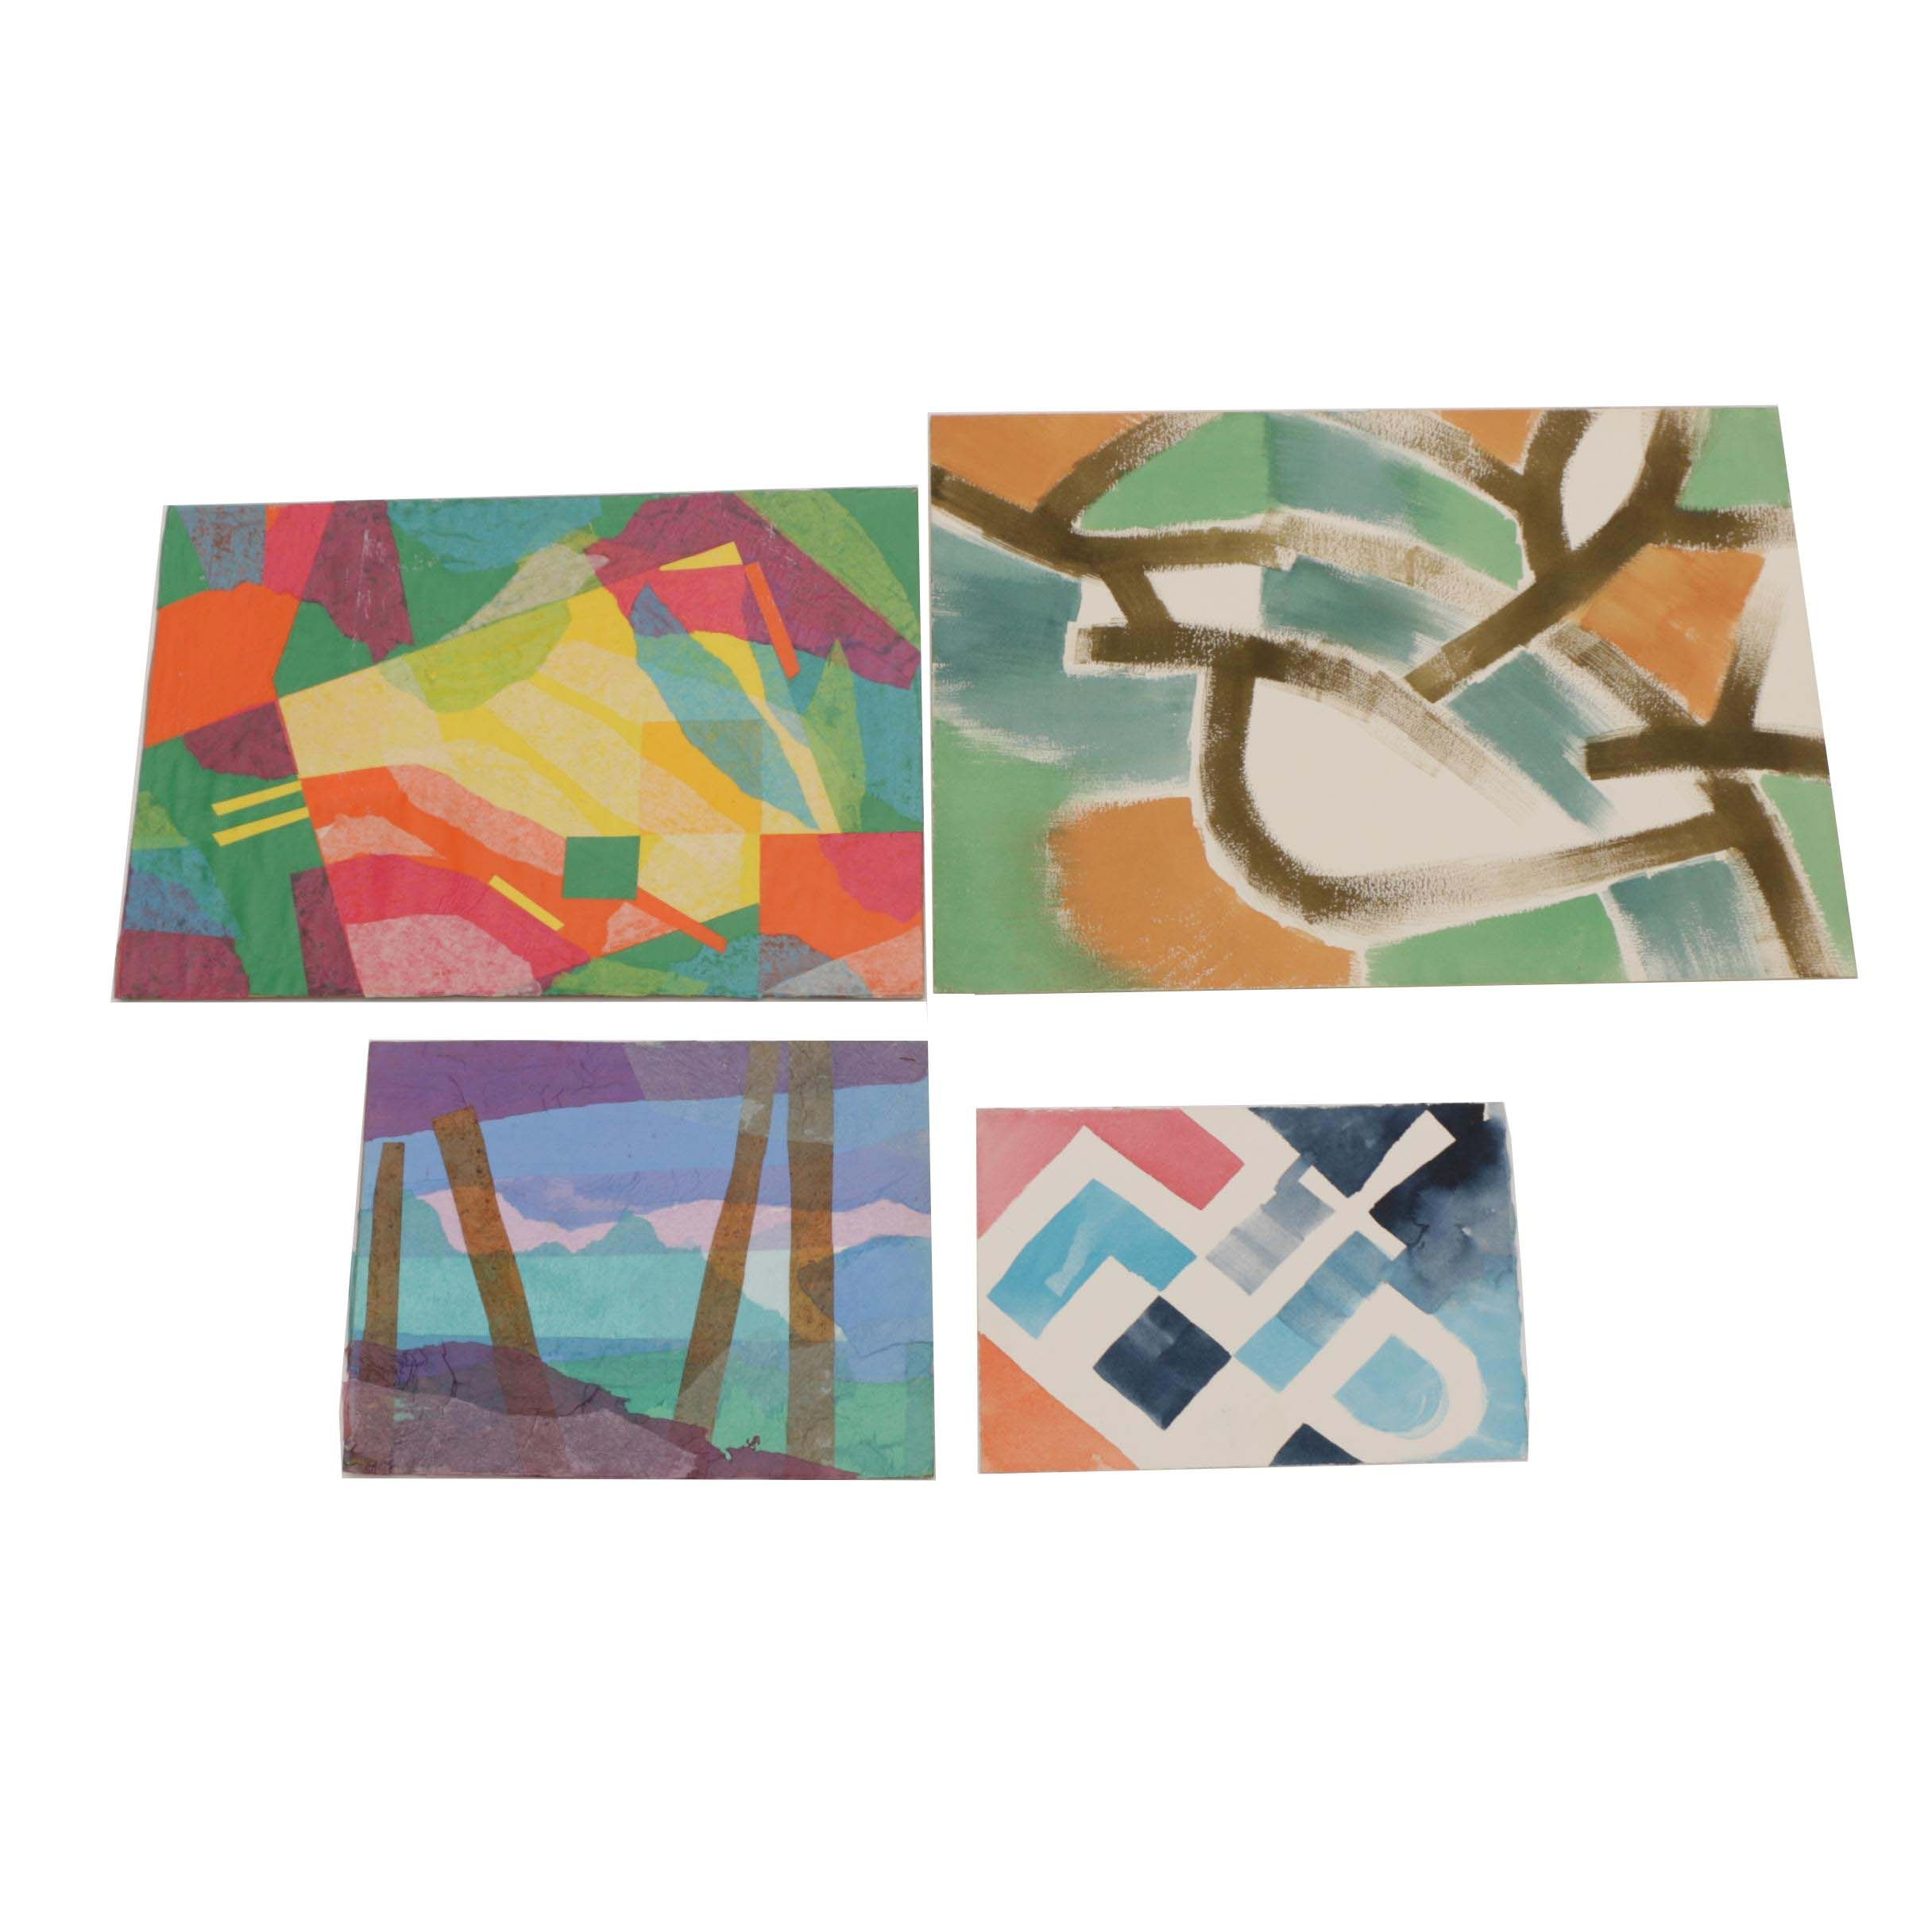 Carol Mathews Abstract Watercolor Paintings and Mixed Media Collages